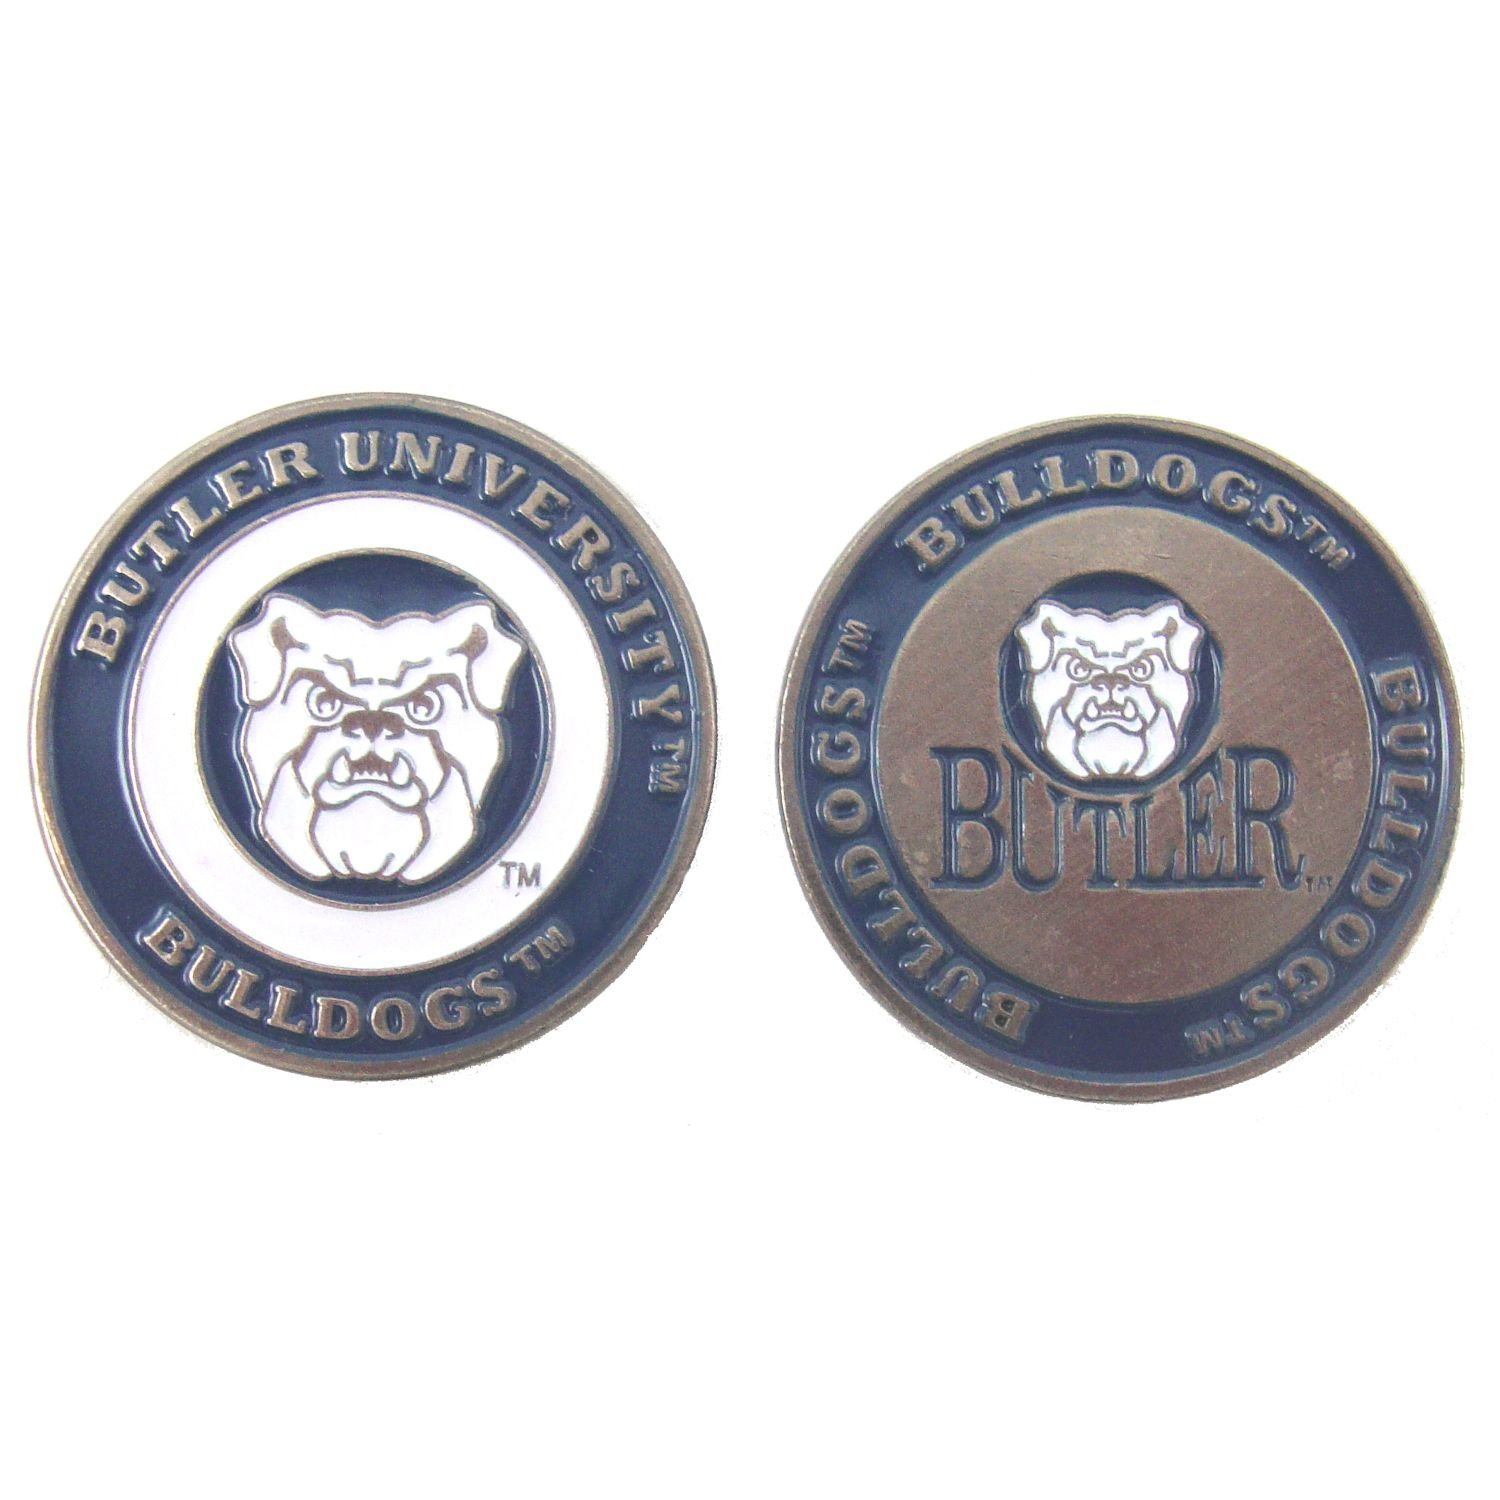 Butler Wildcats NCAA Double-Sided Golf Ball Marker, 1 Team Logo Double Sided Ball Marker By Waggle Pro Shop,USA